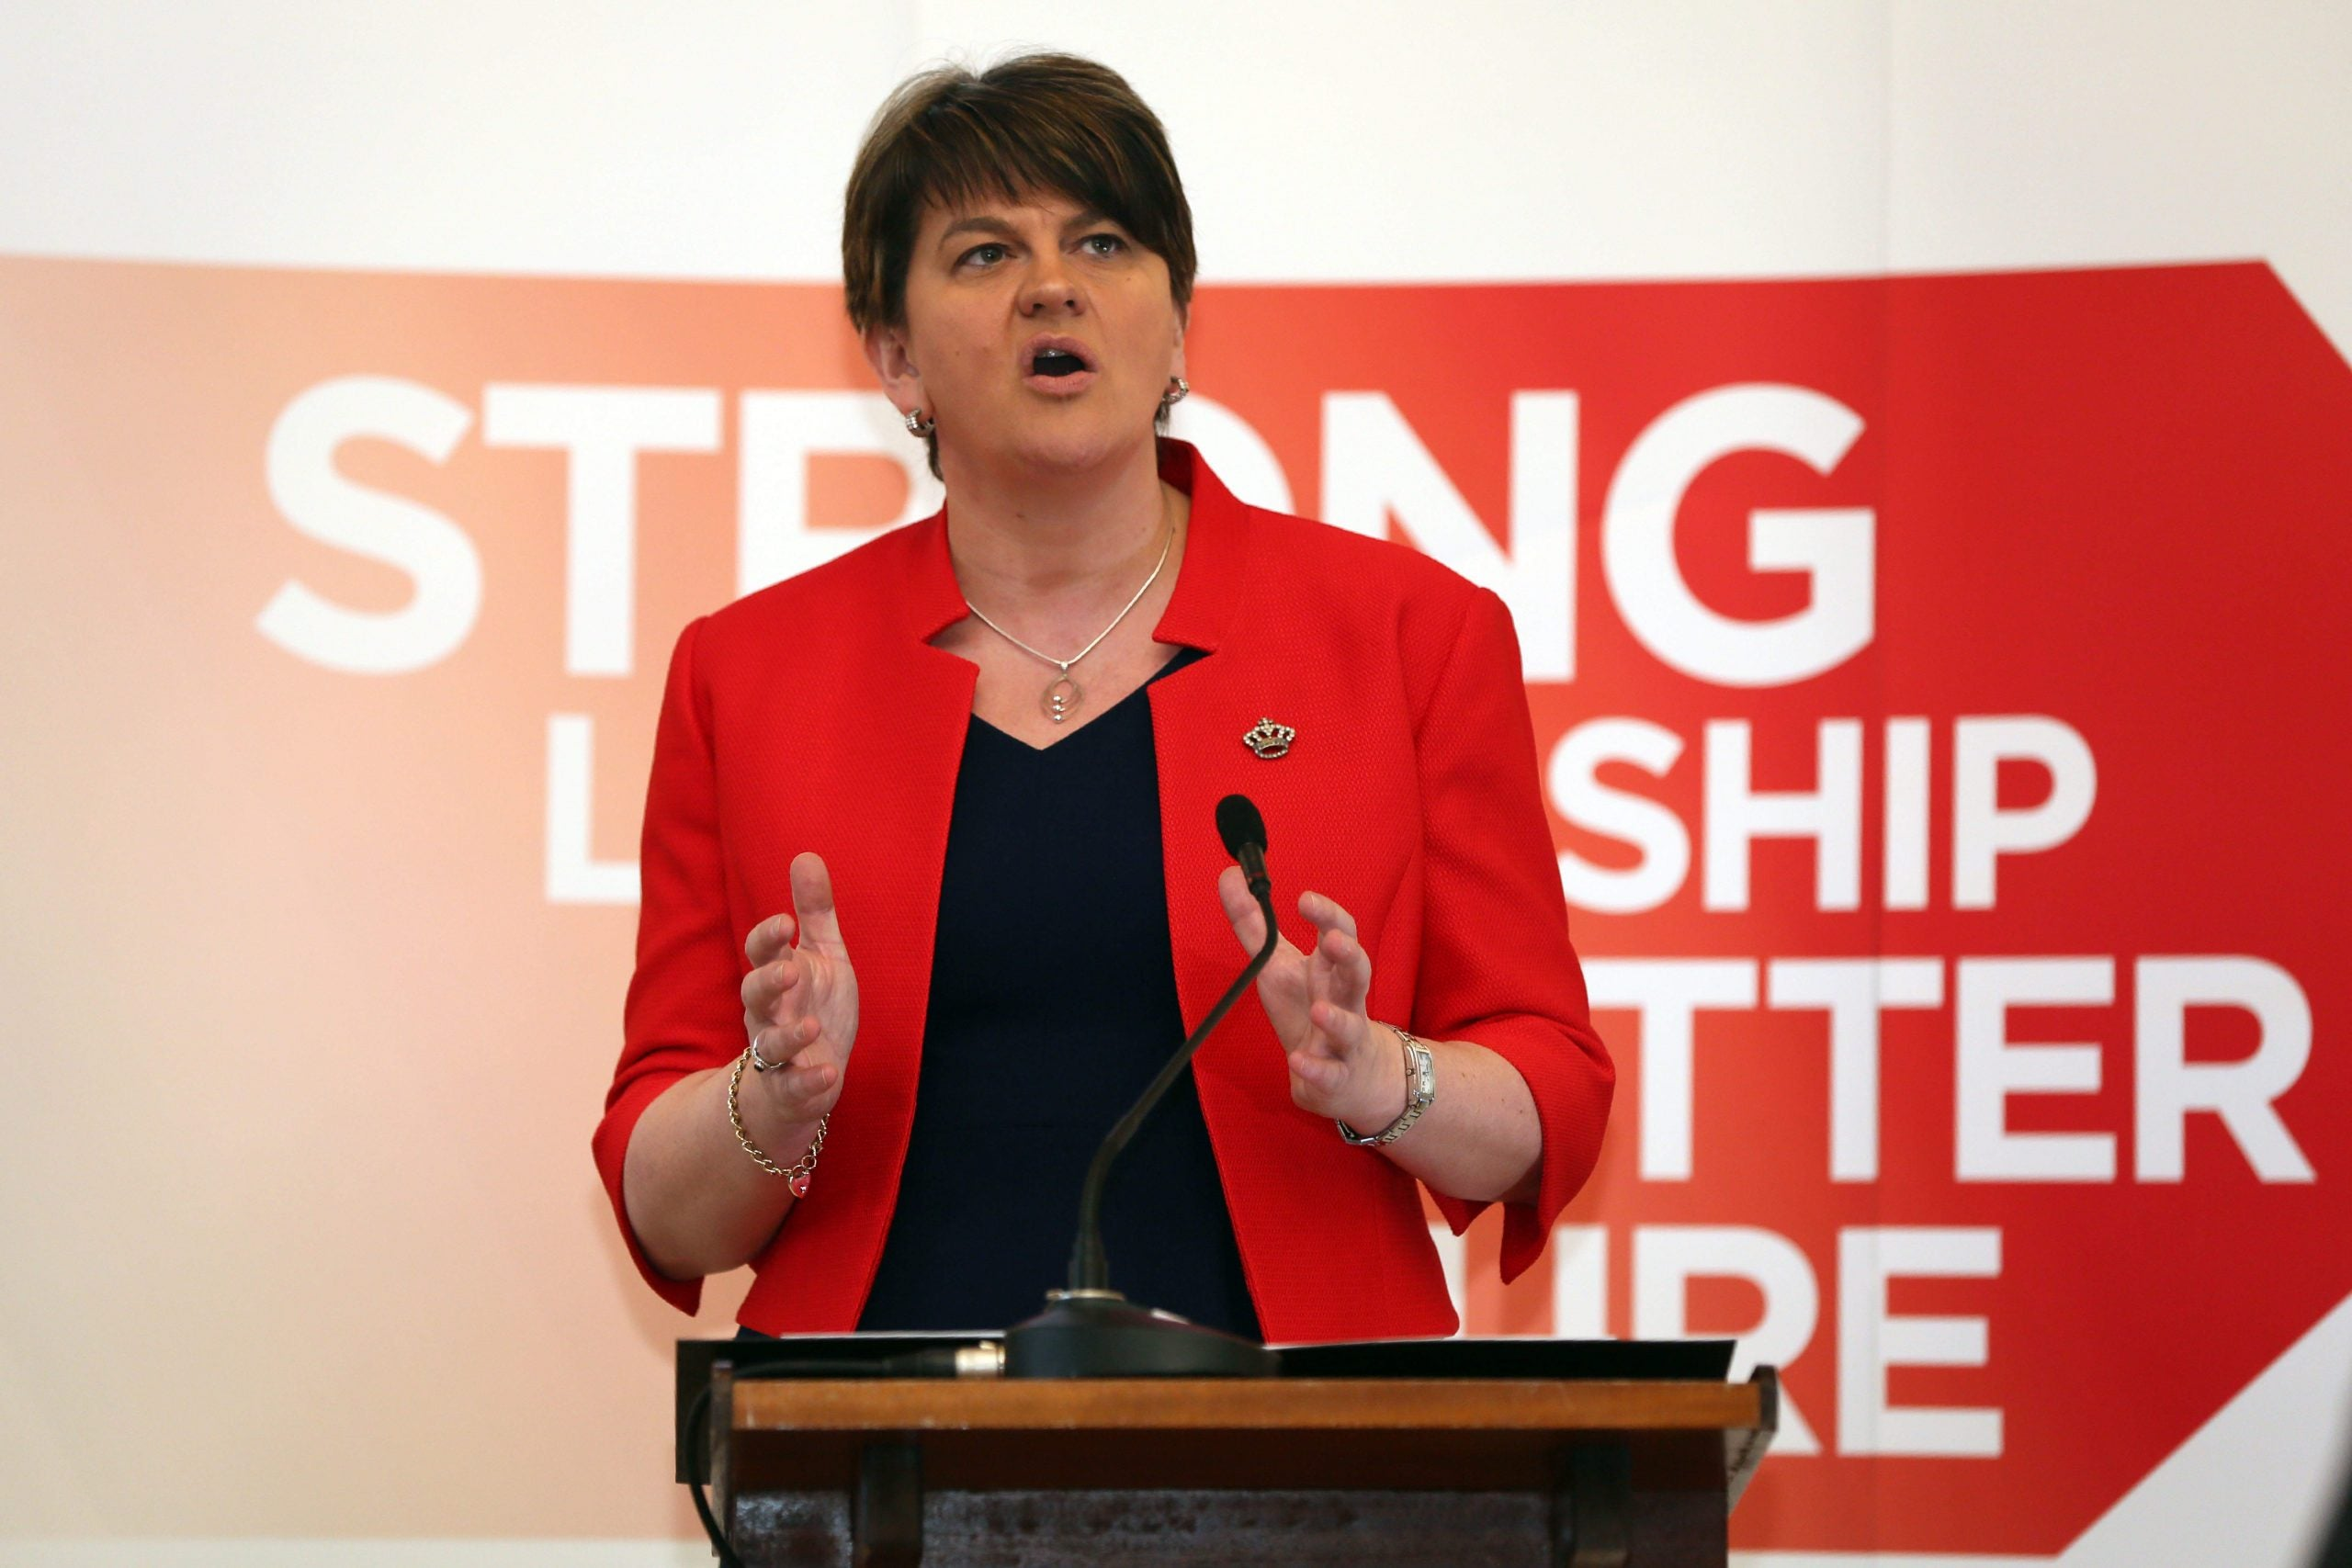 Northern Ireland's election: Will Arlene Foster pay the price for a domestic scandal?